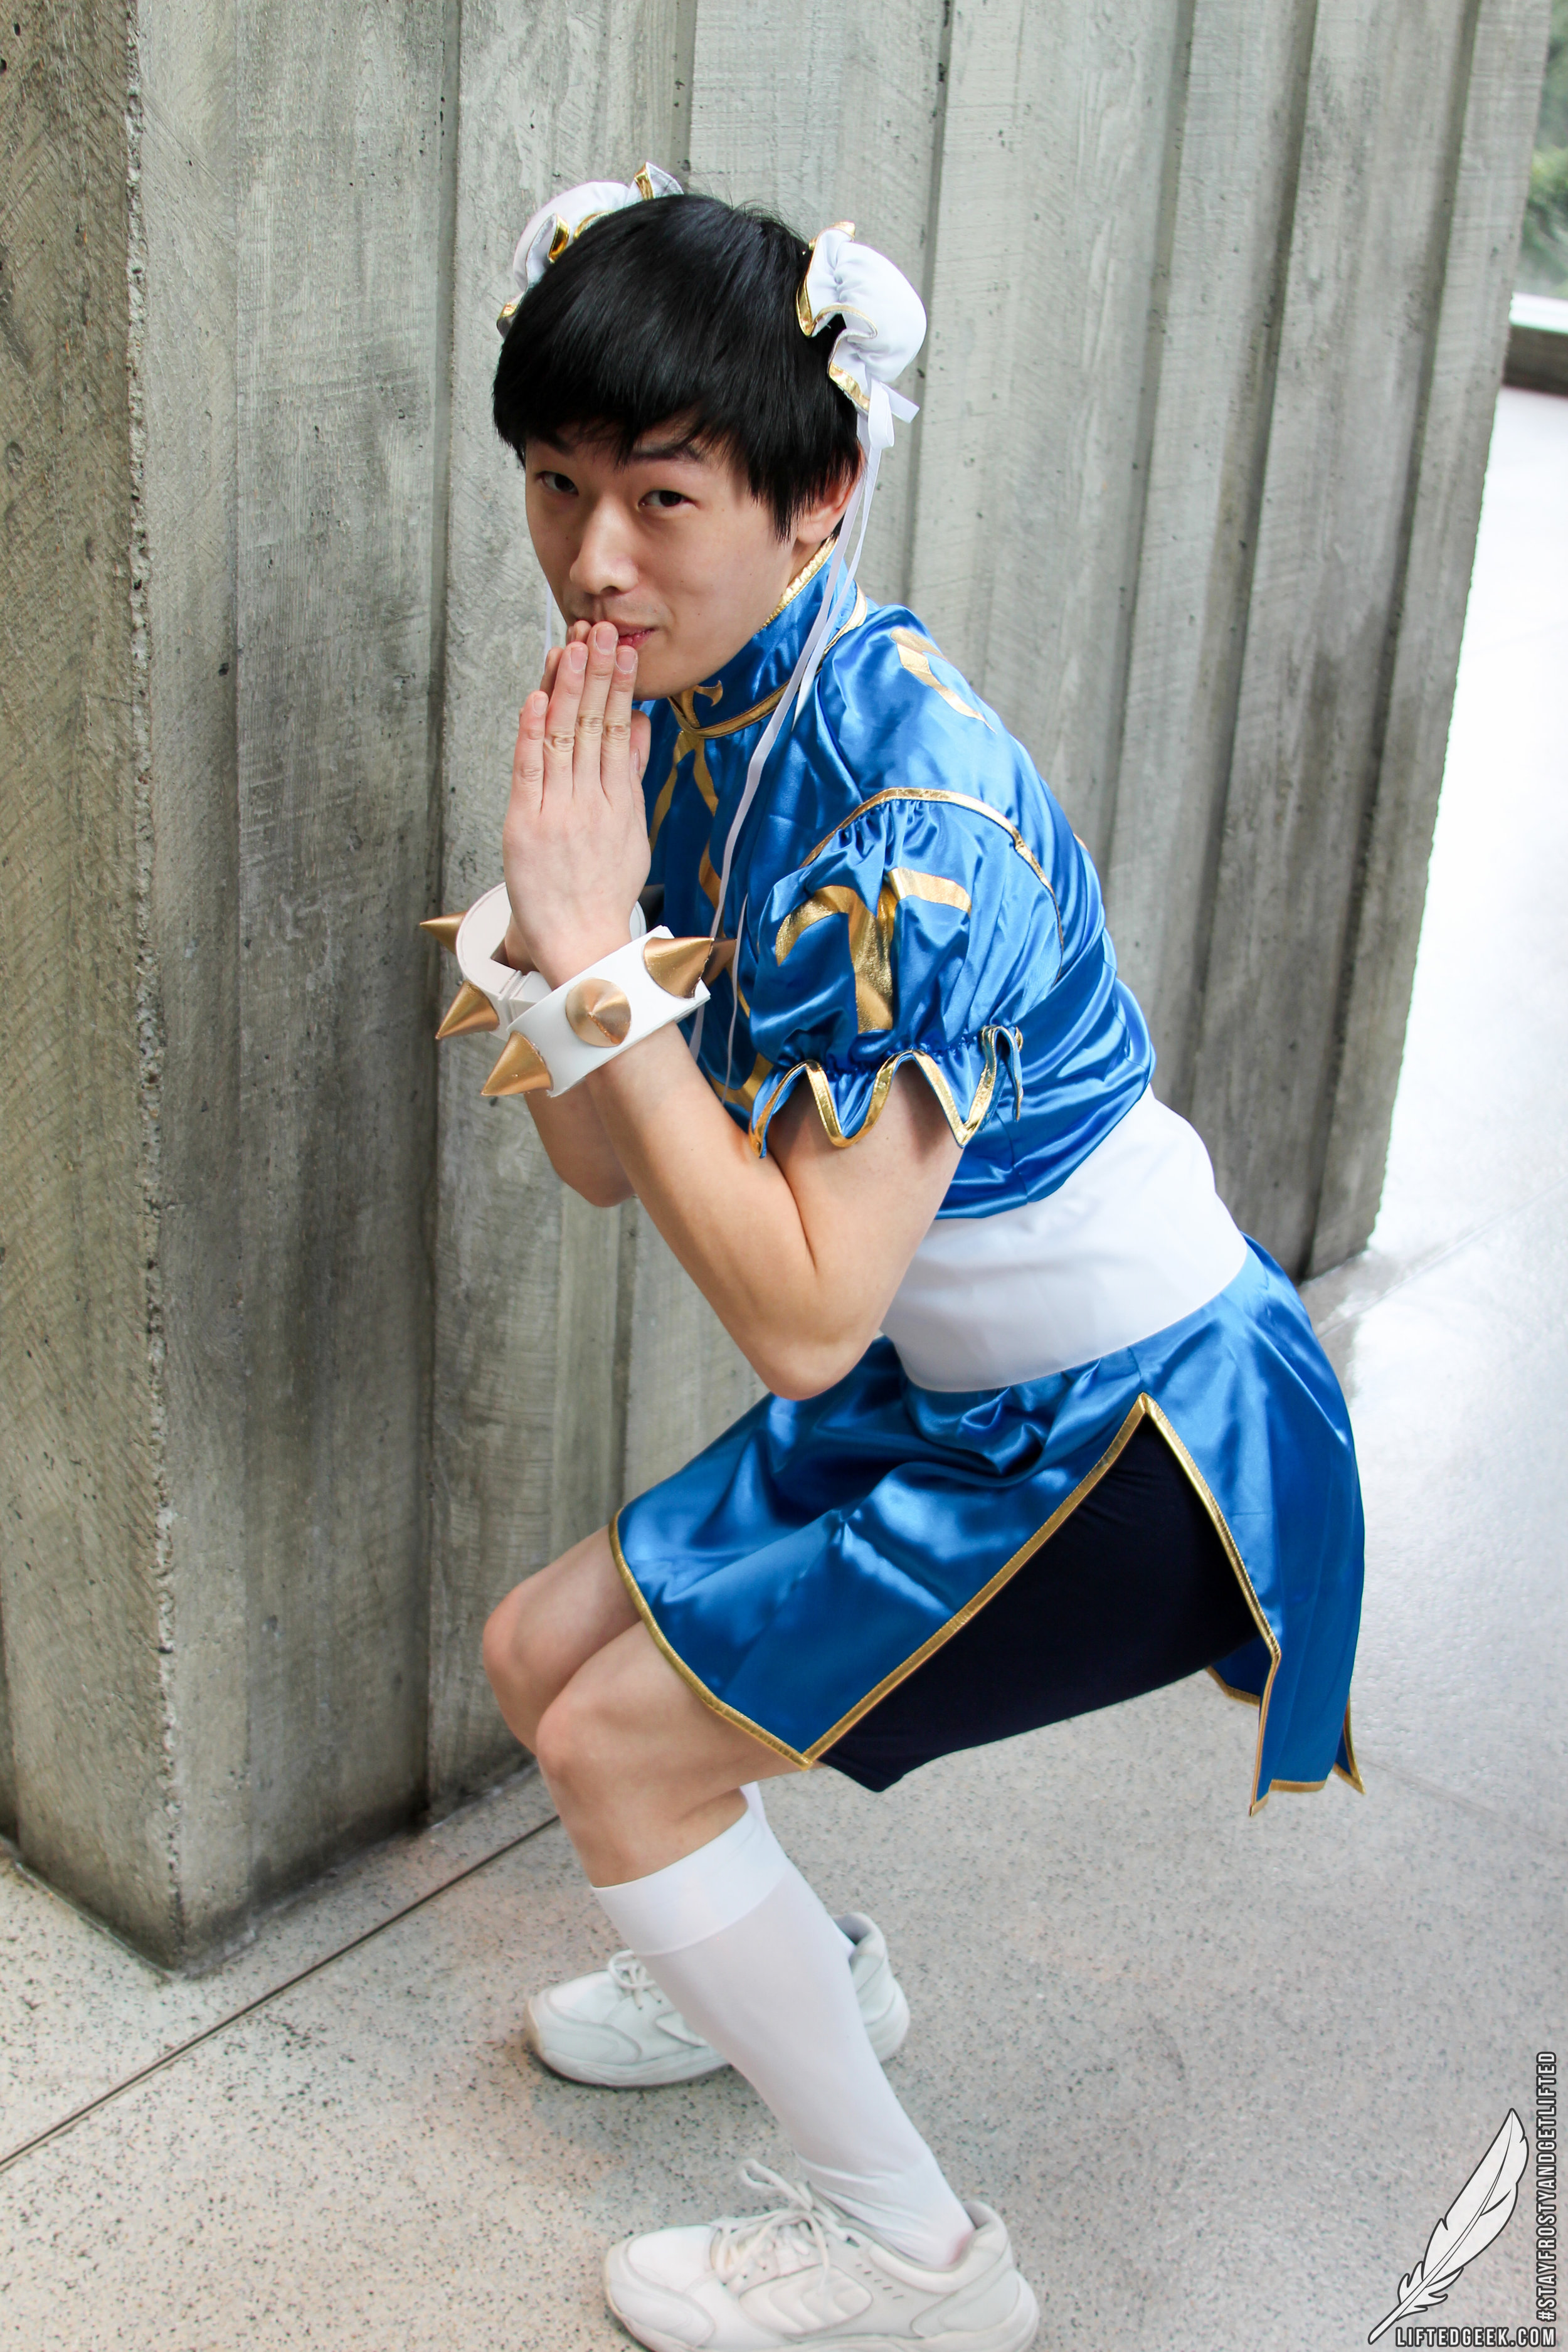 Sakuracon-cosplay-166.jpg